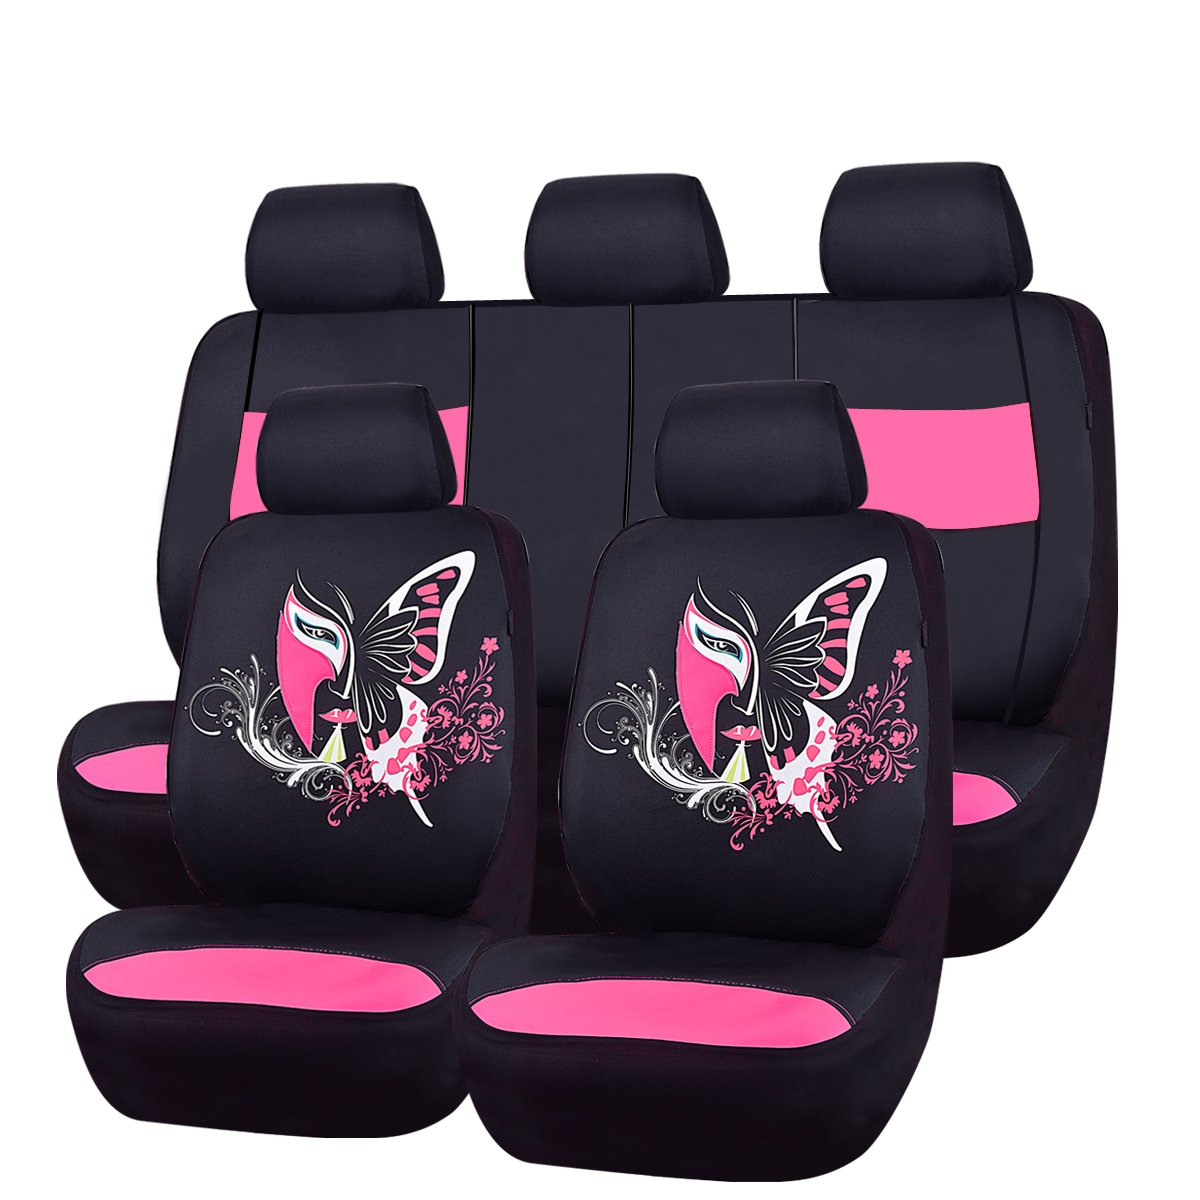 Cheap Pink Car Seat Covers Find Pink Car Seat Covers Deals On Line